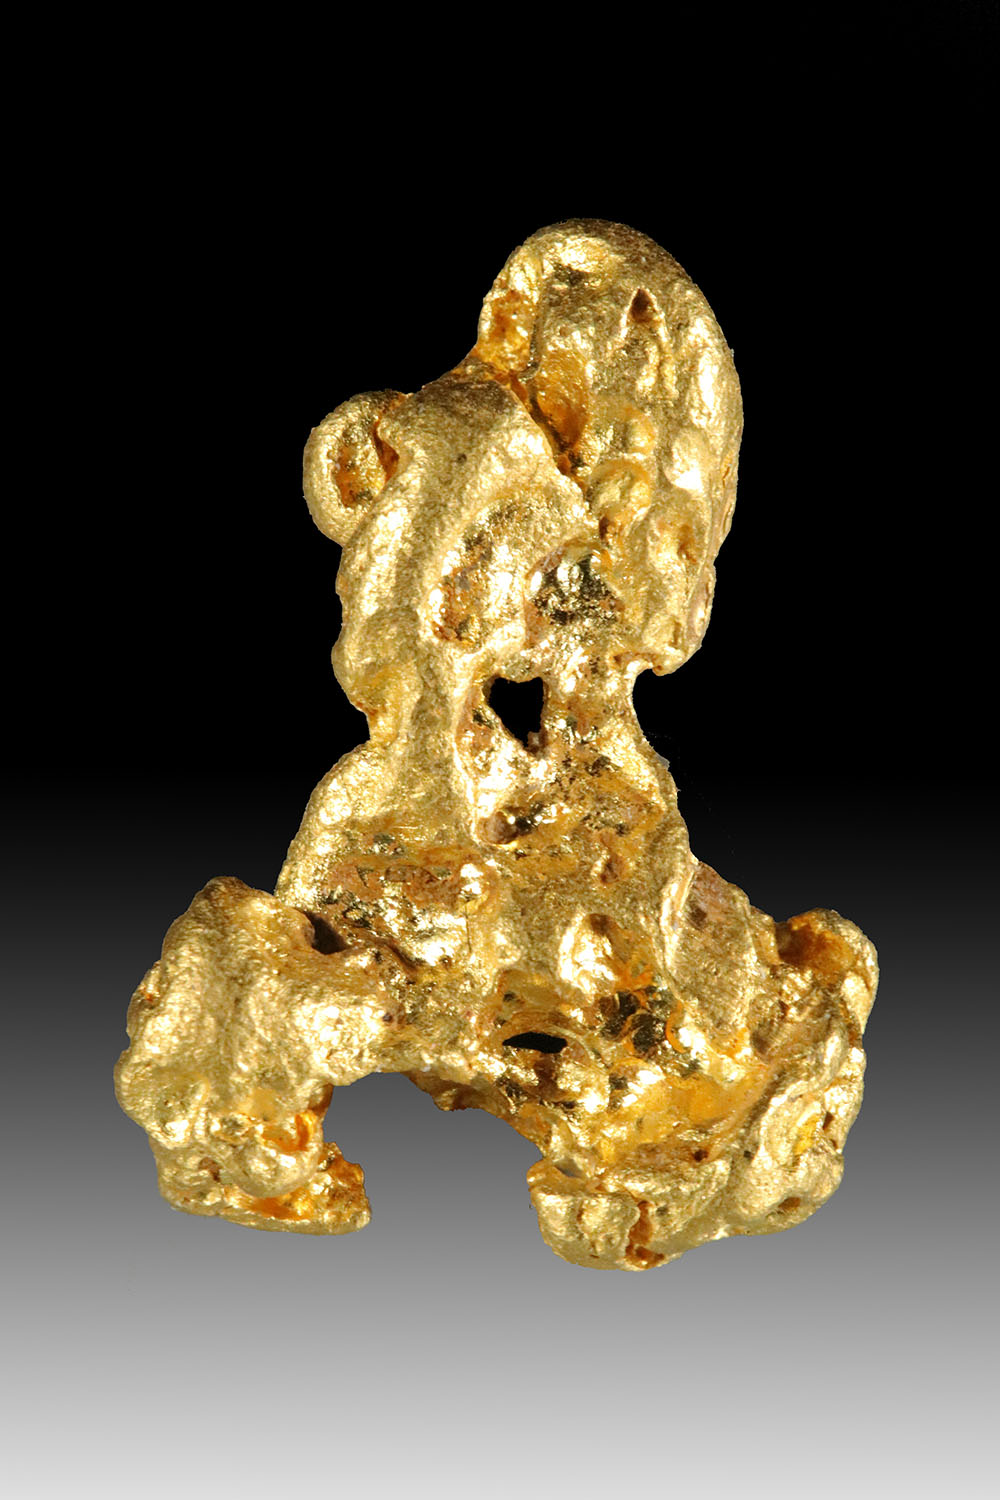 Superb and Curiously Shaped Natural Australian Gold Nugget